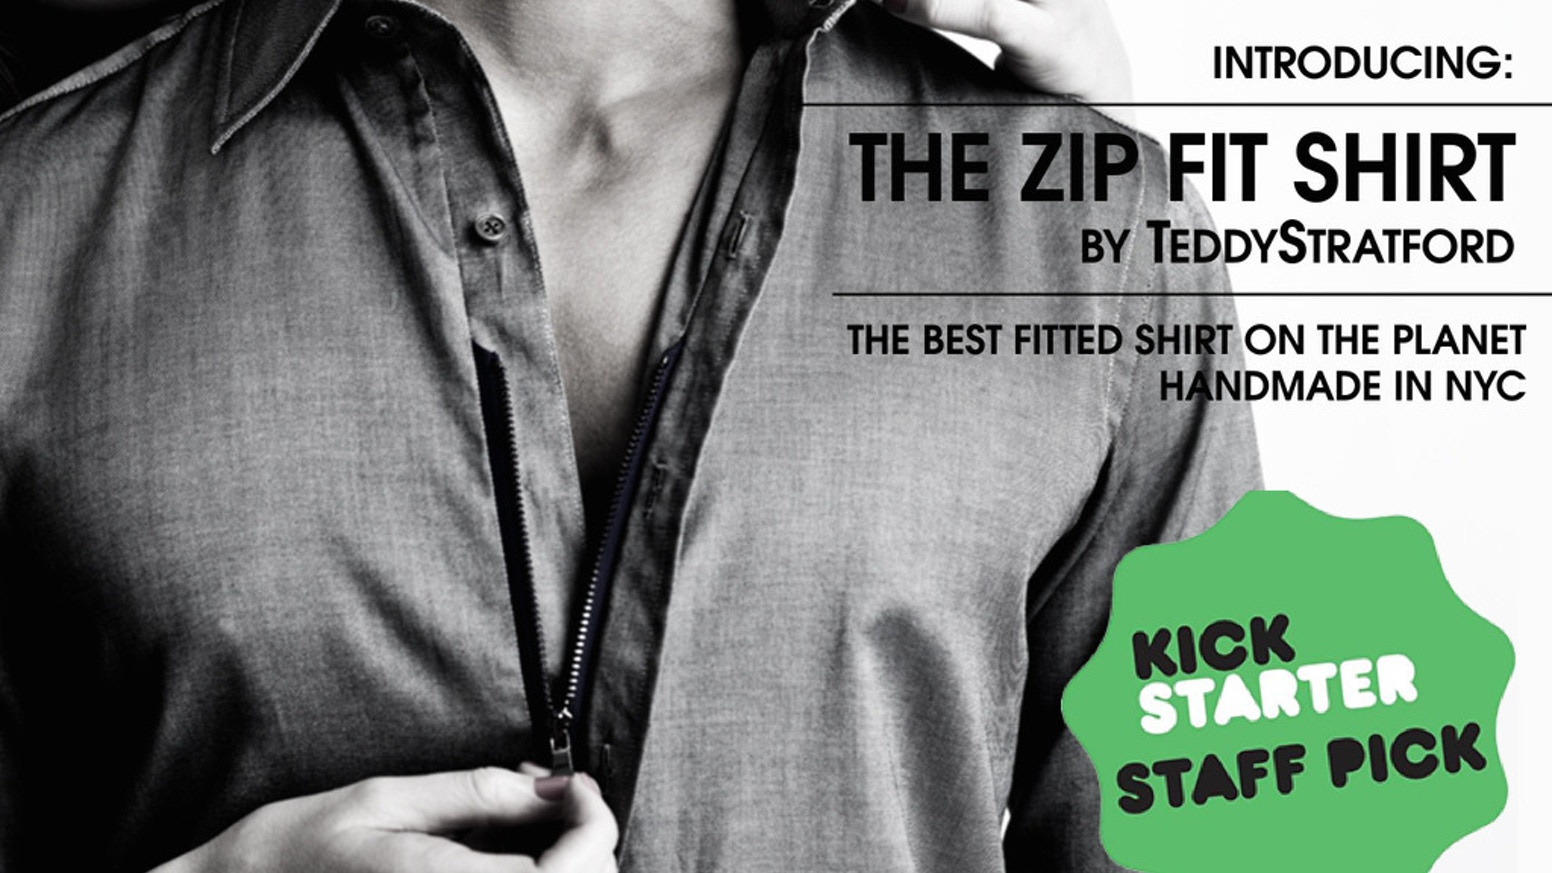 04e670902f4 With an innovative twist, the Zip Fit shirt creates a clean, athletic fit  without